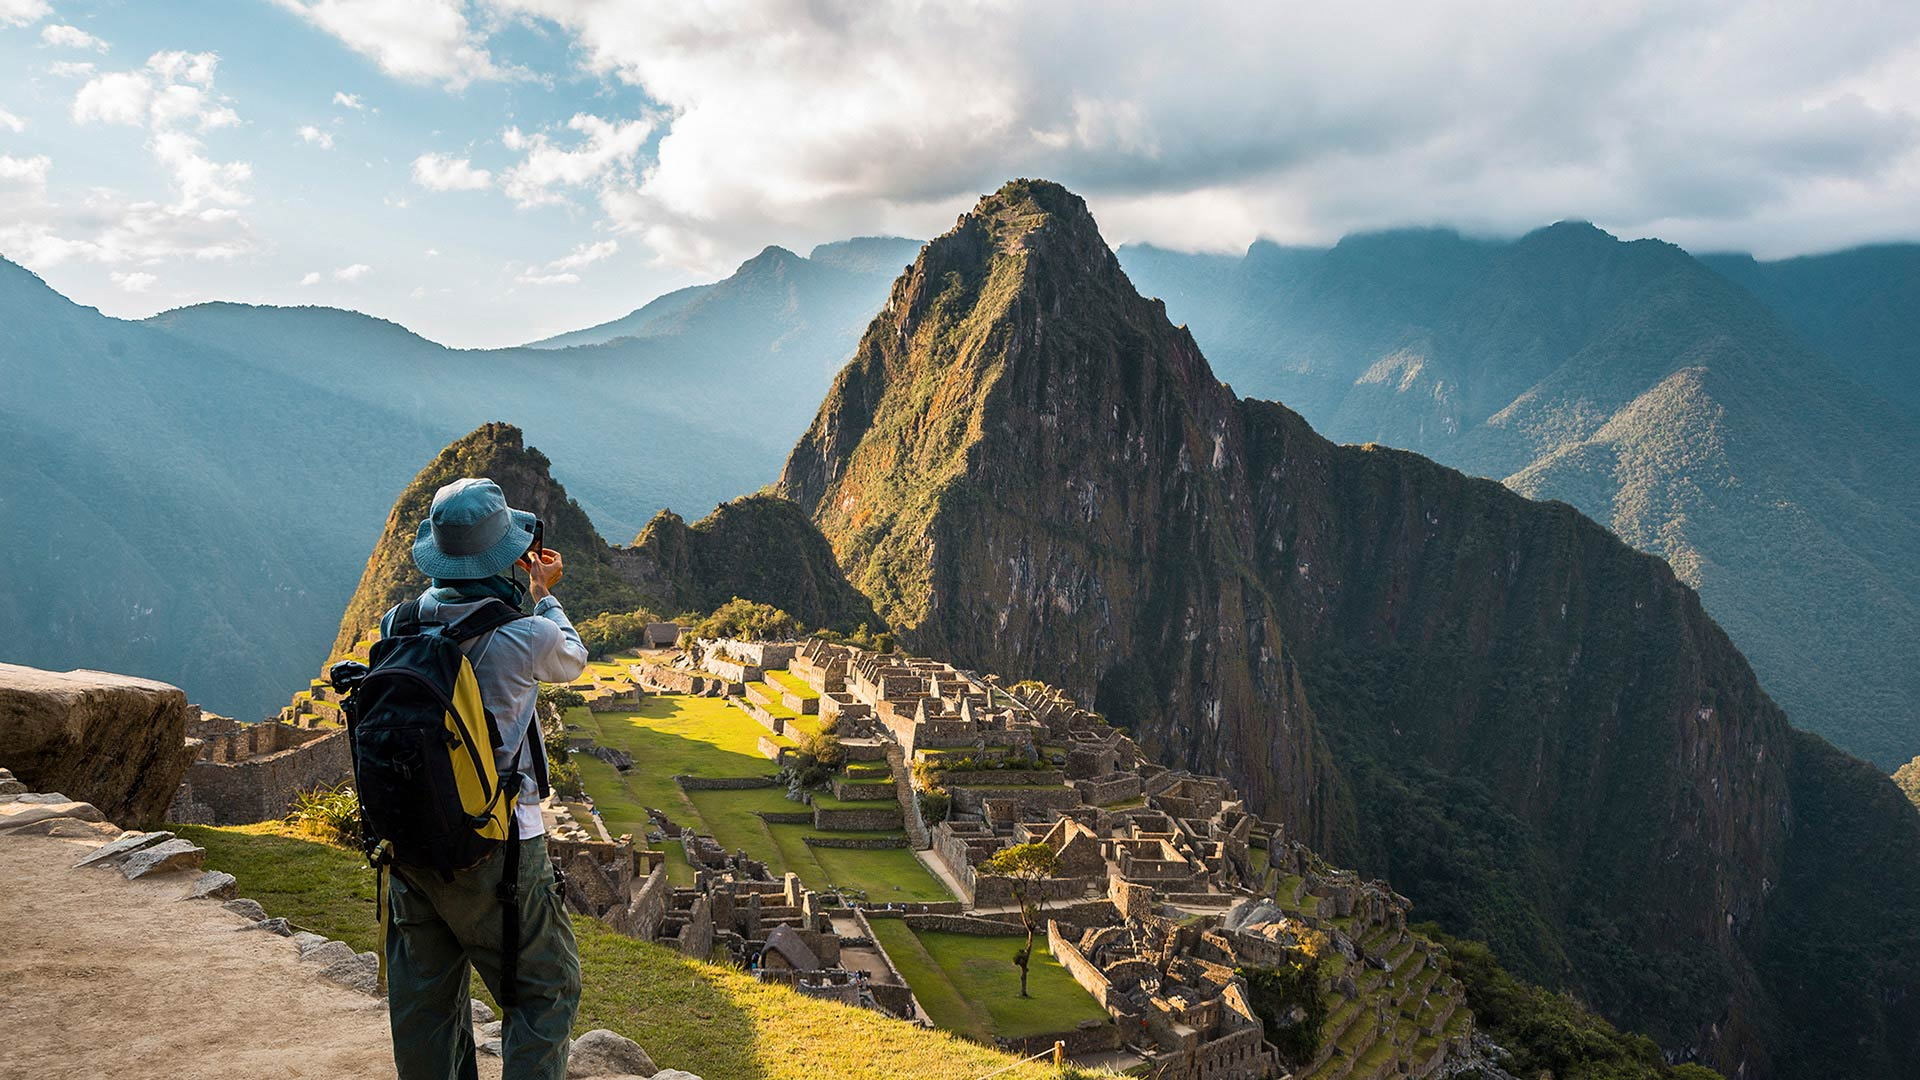 Tourist taking a photo to Machu Picchu wonder of the world